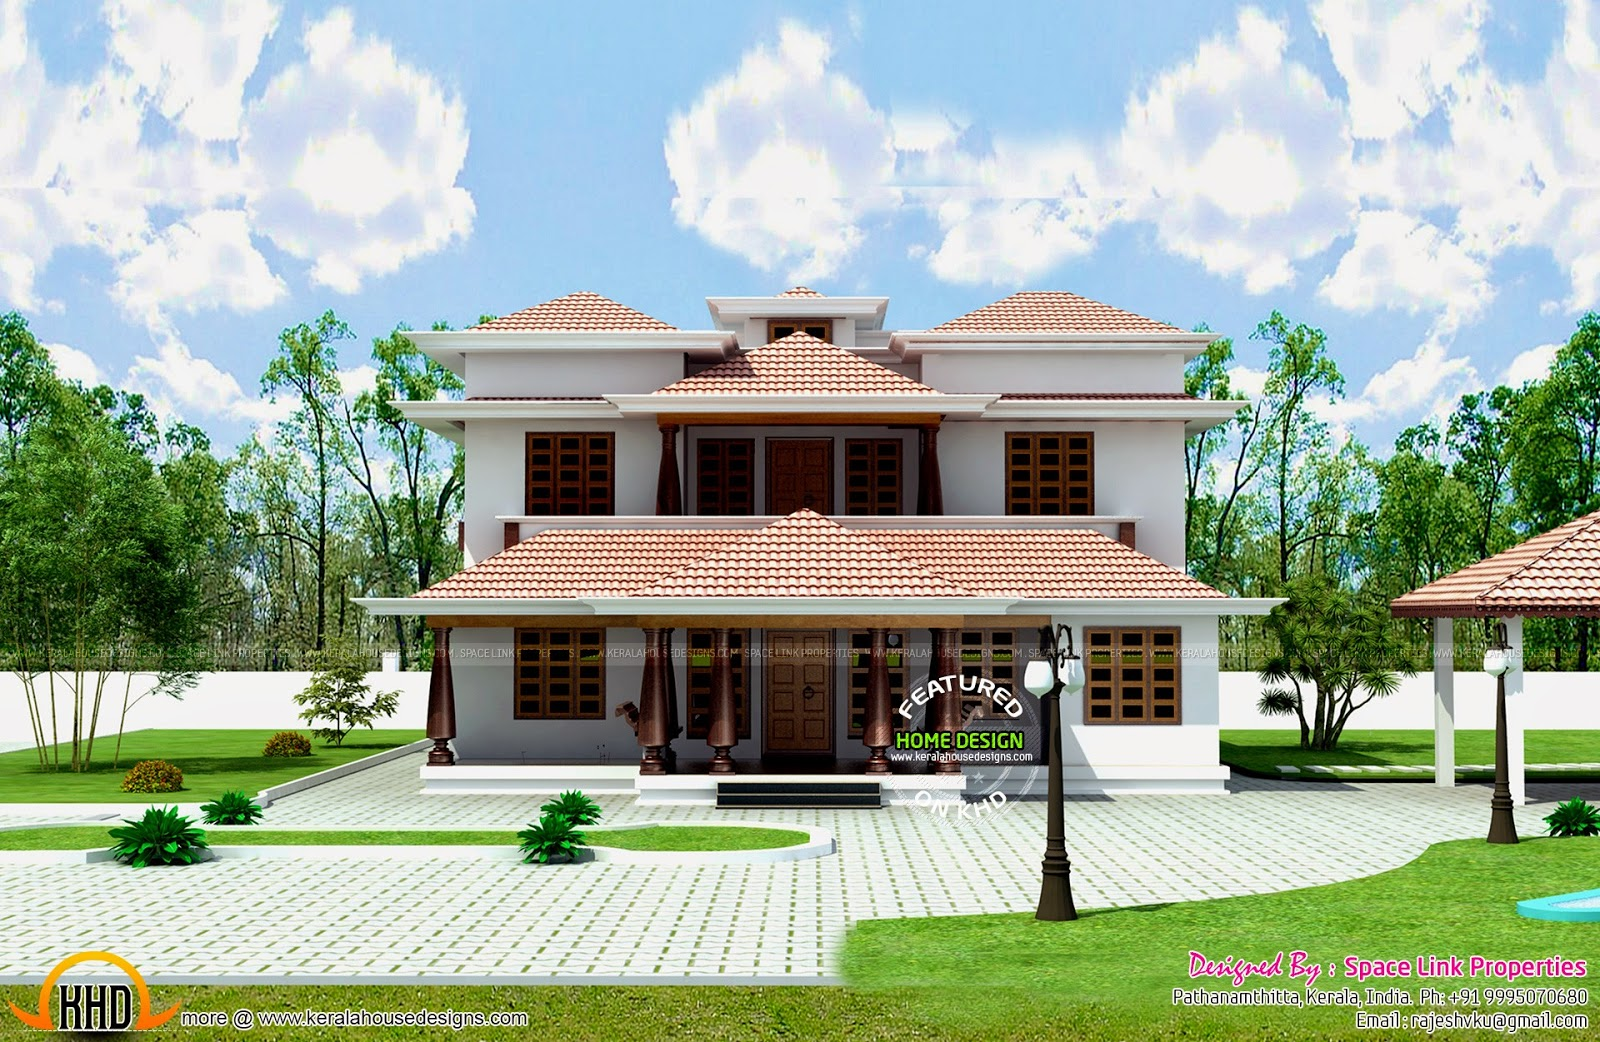 Typical kerala traditional house kerala home design and for Kerala house images gallery